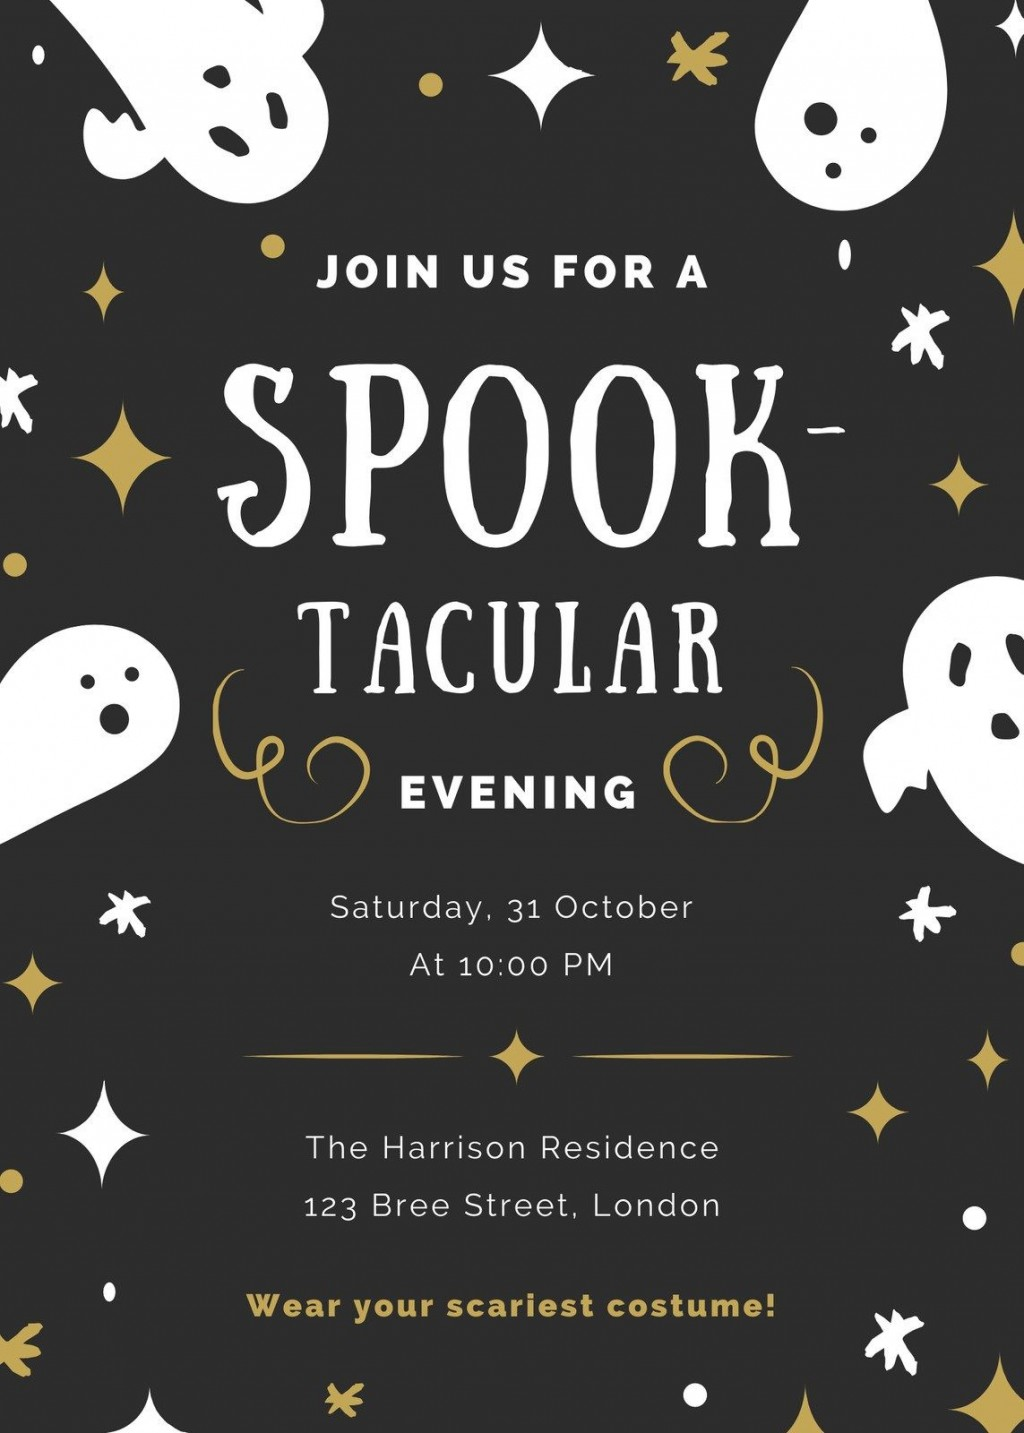 007 Frightening Halloween Party Invite Template Highest Quality  Spooky Invitation Free Printable Birthday DownloadLarge